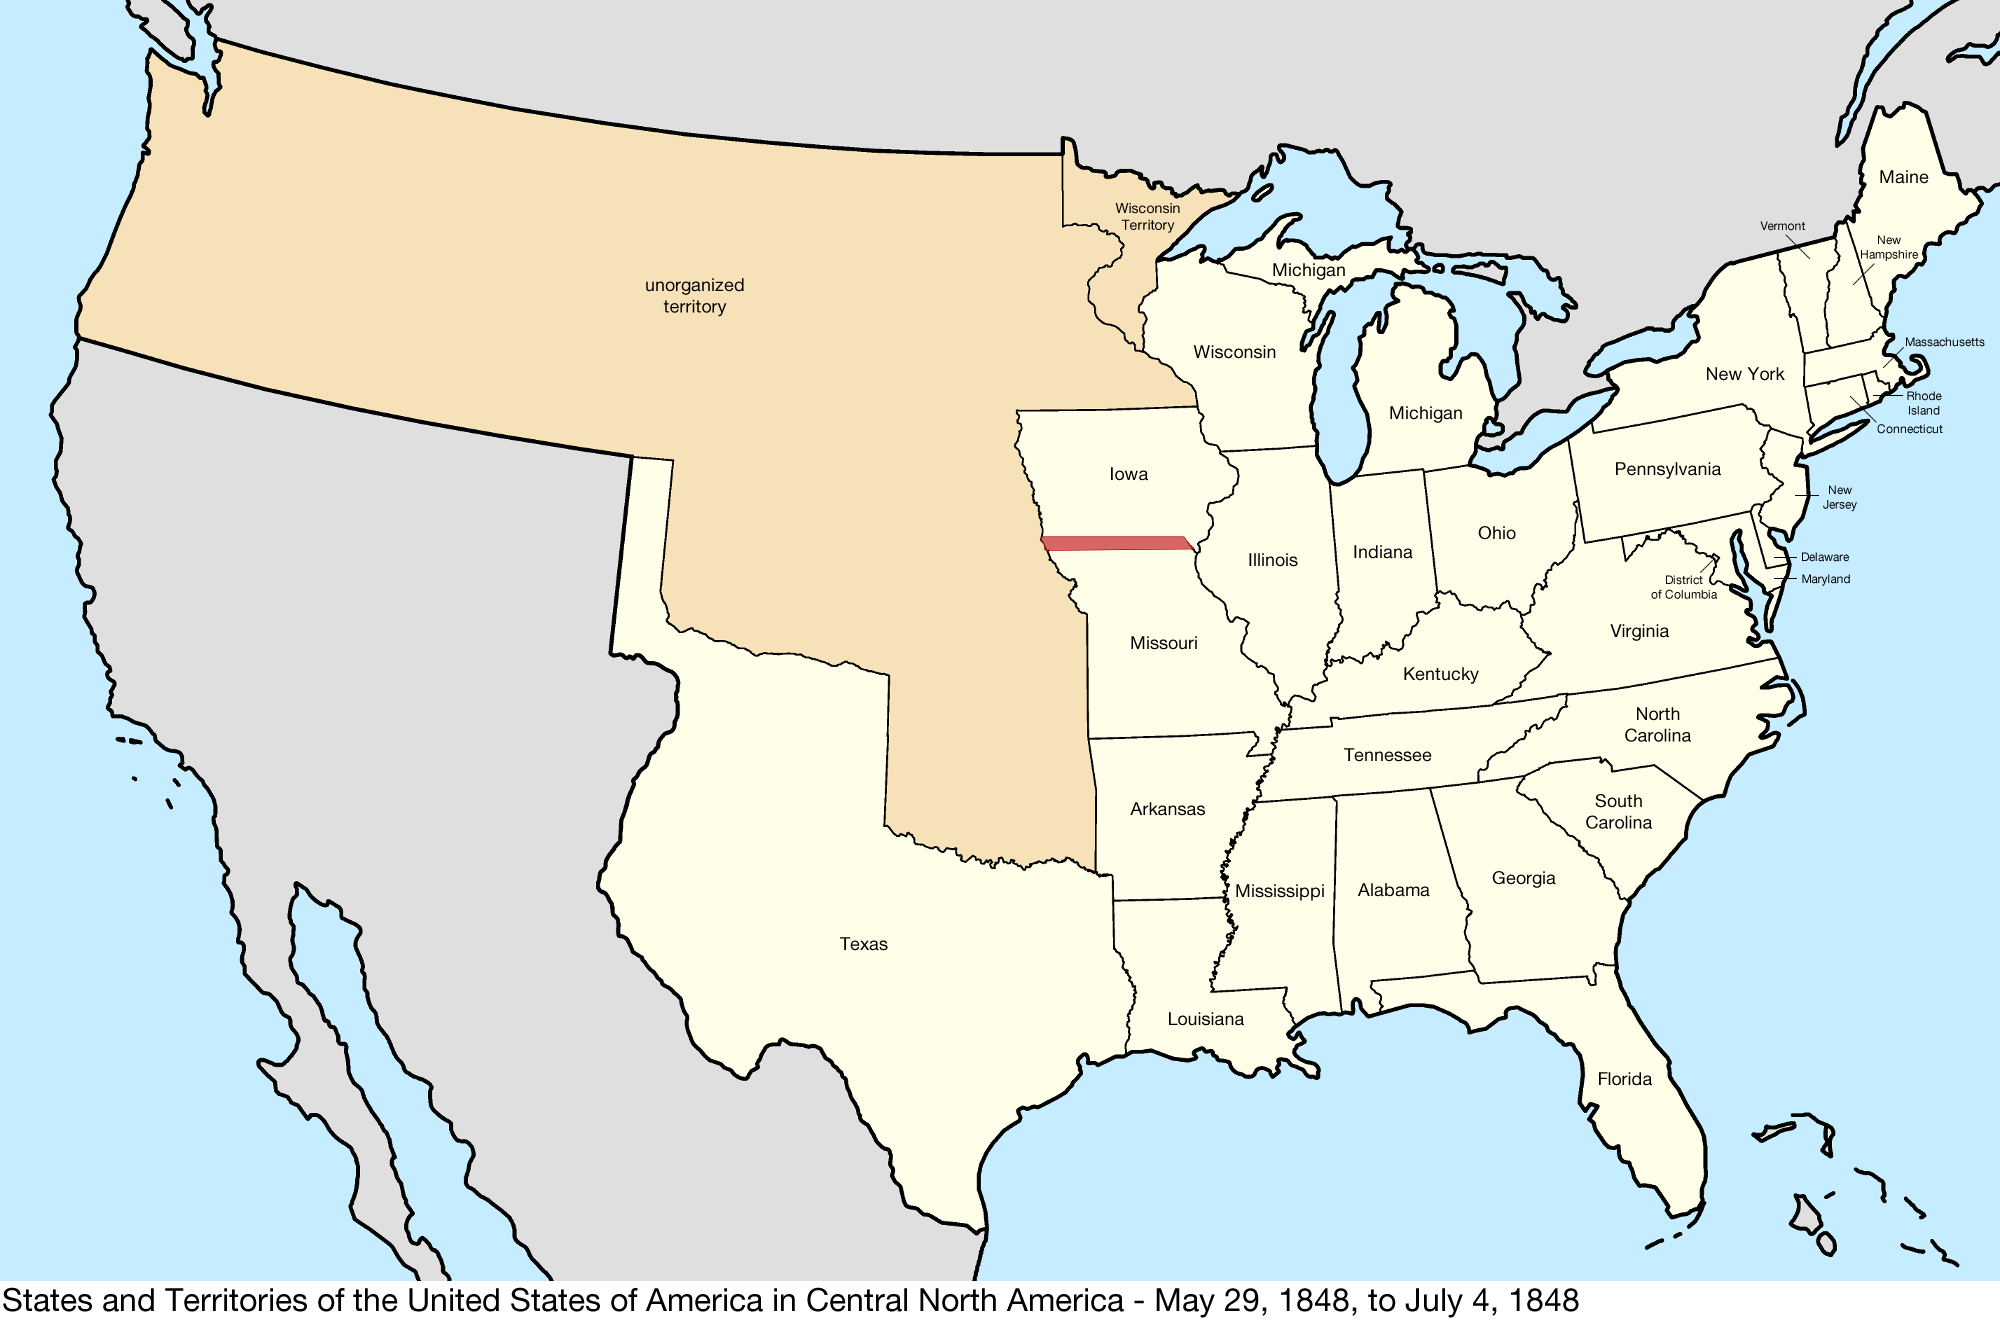 file united states central map 1848 05 29 to 1848 07